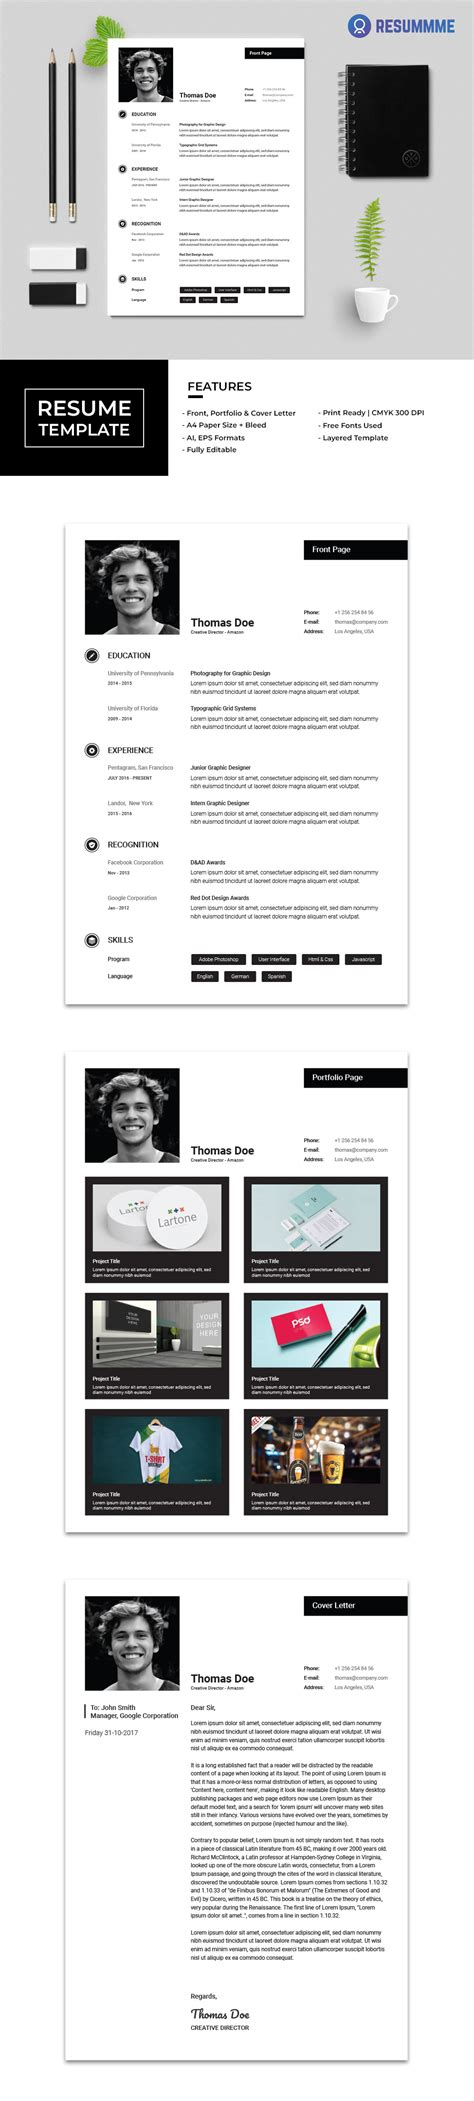 Creative Director Resume by Creative Director Resume Template Free Resummme